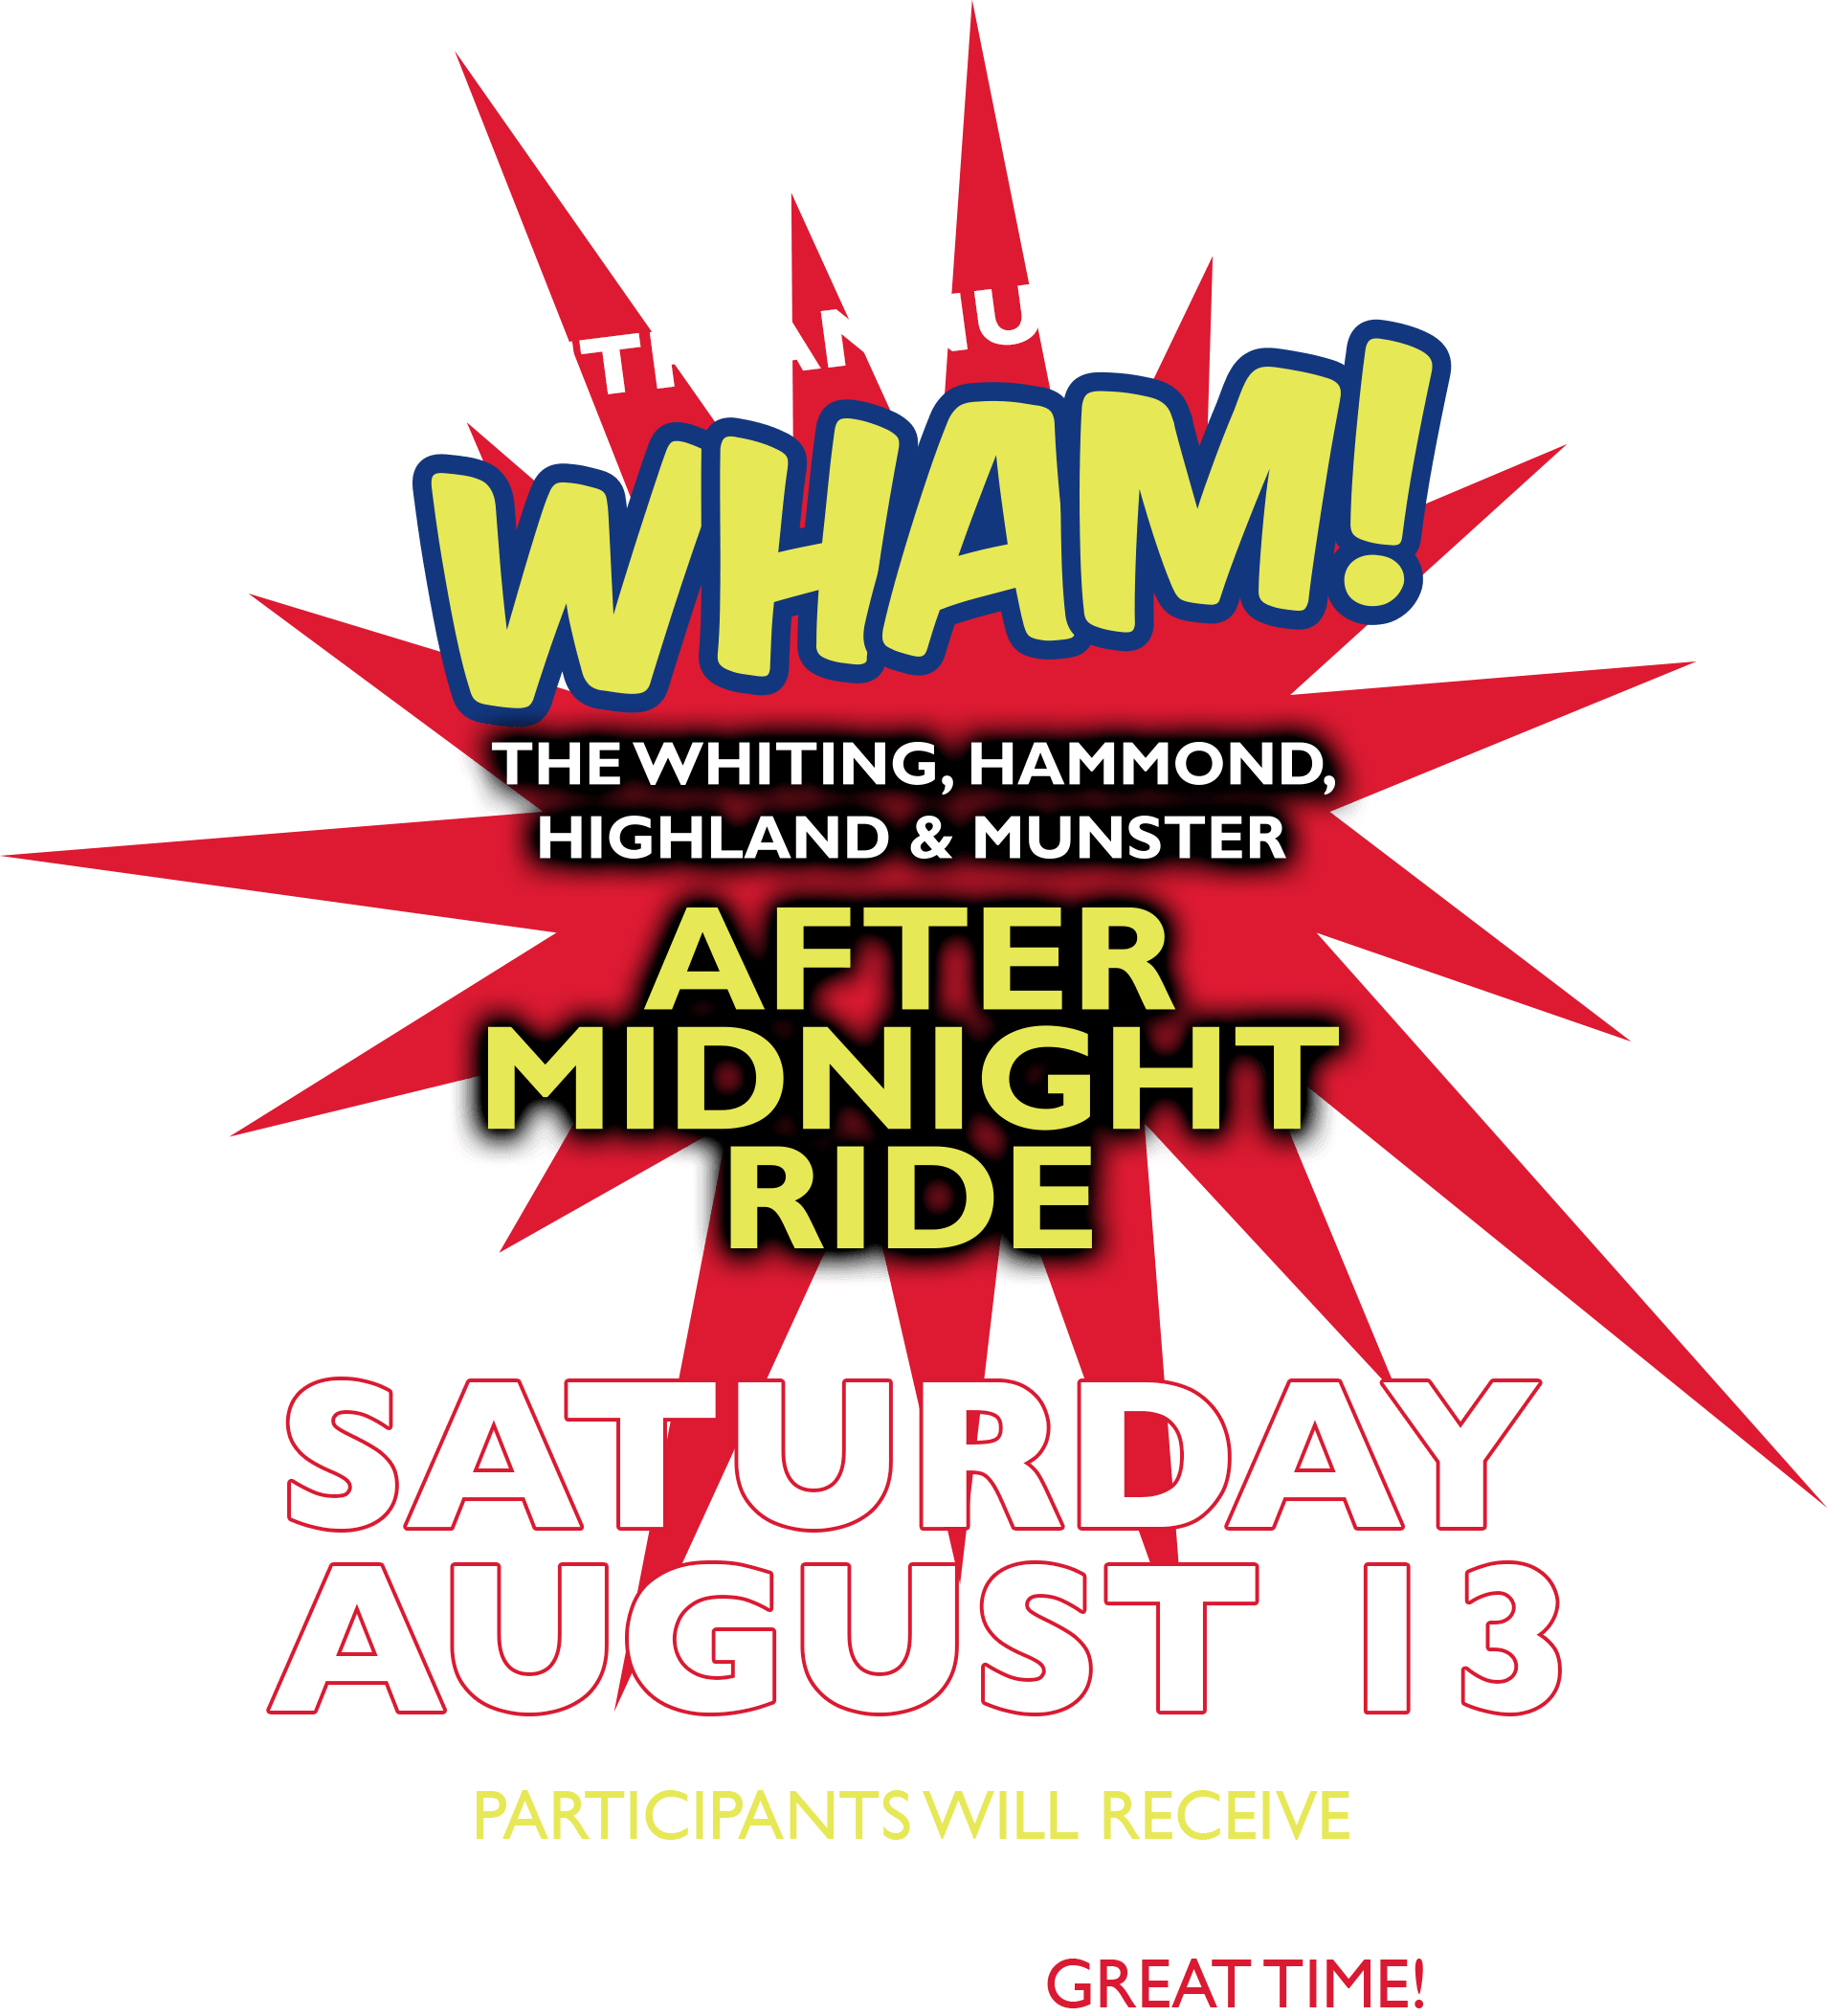 WHAM! The Whiting, Hammond, Highland & Munster After Midnight Ride